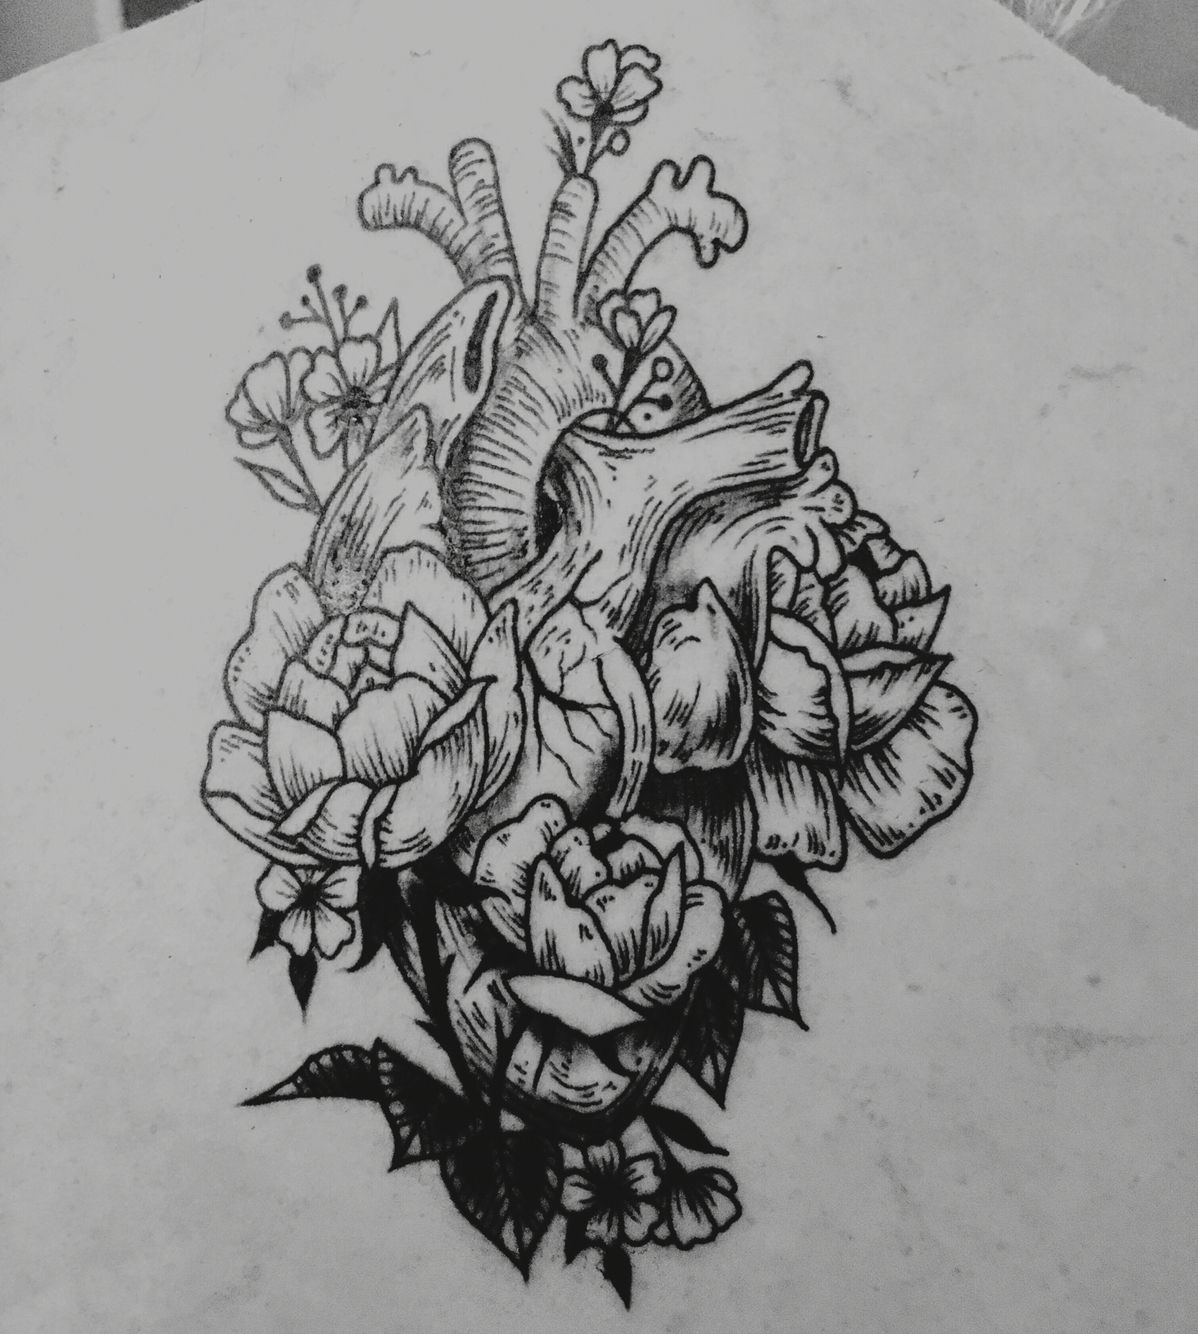 Anatomical heart line art detail tattoo with floral